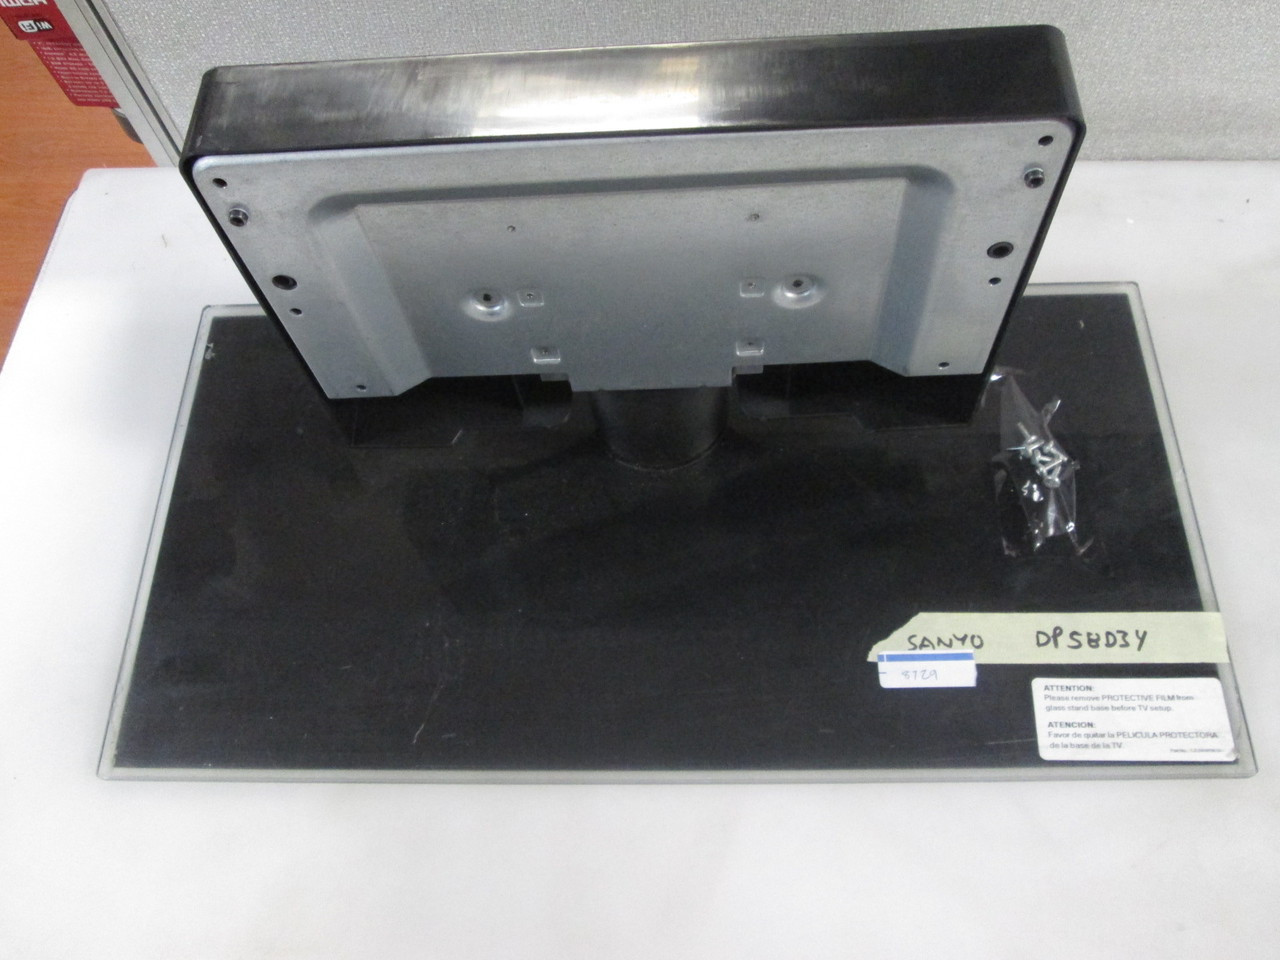 sanyo dp58d34 base/stand (screws included)